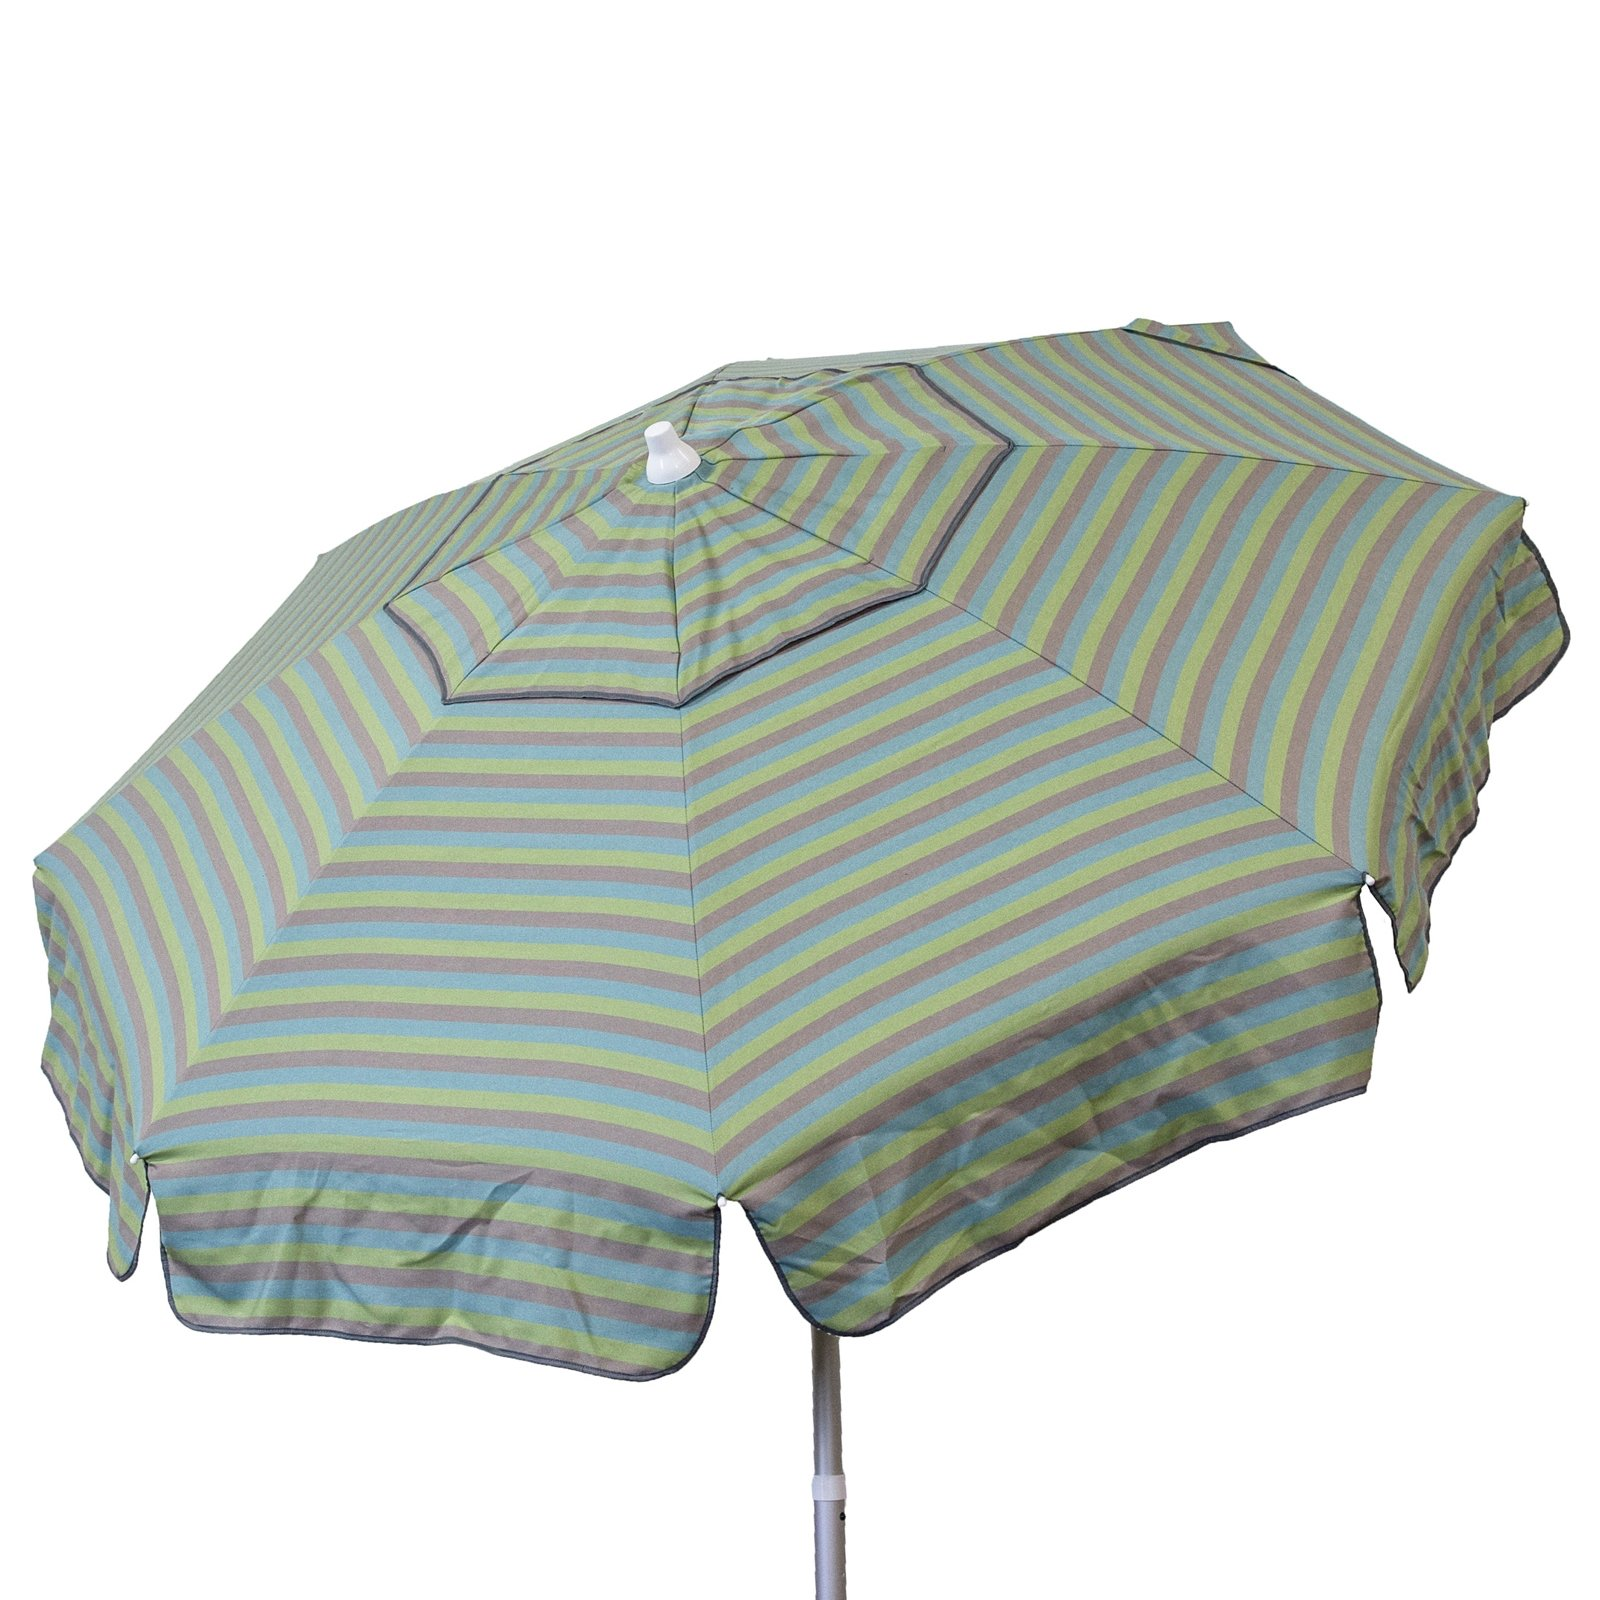 Euro 6 foot Umbrella Acrylic Blue Taupe Olive Stripes - Patio Pole